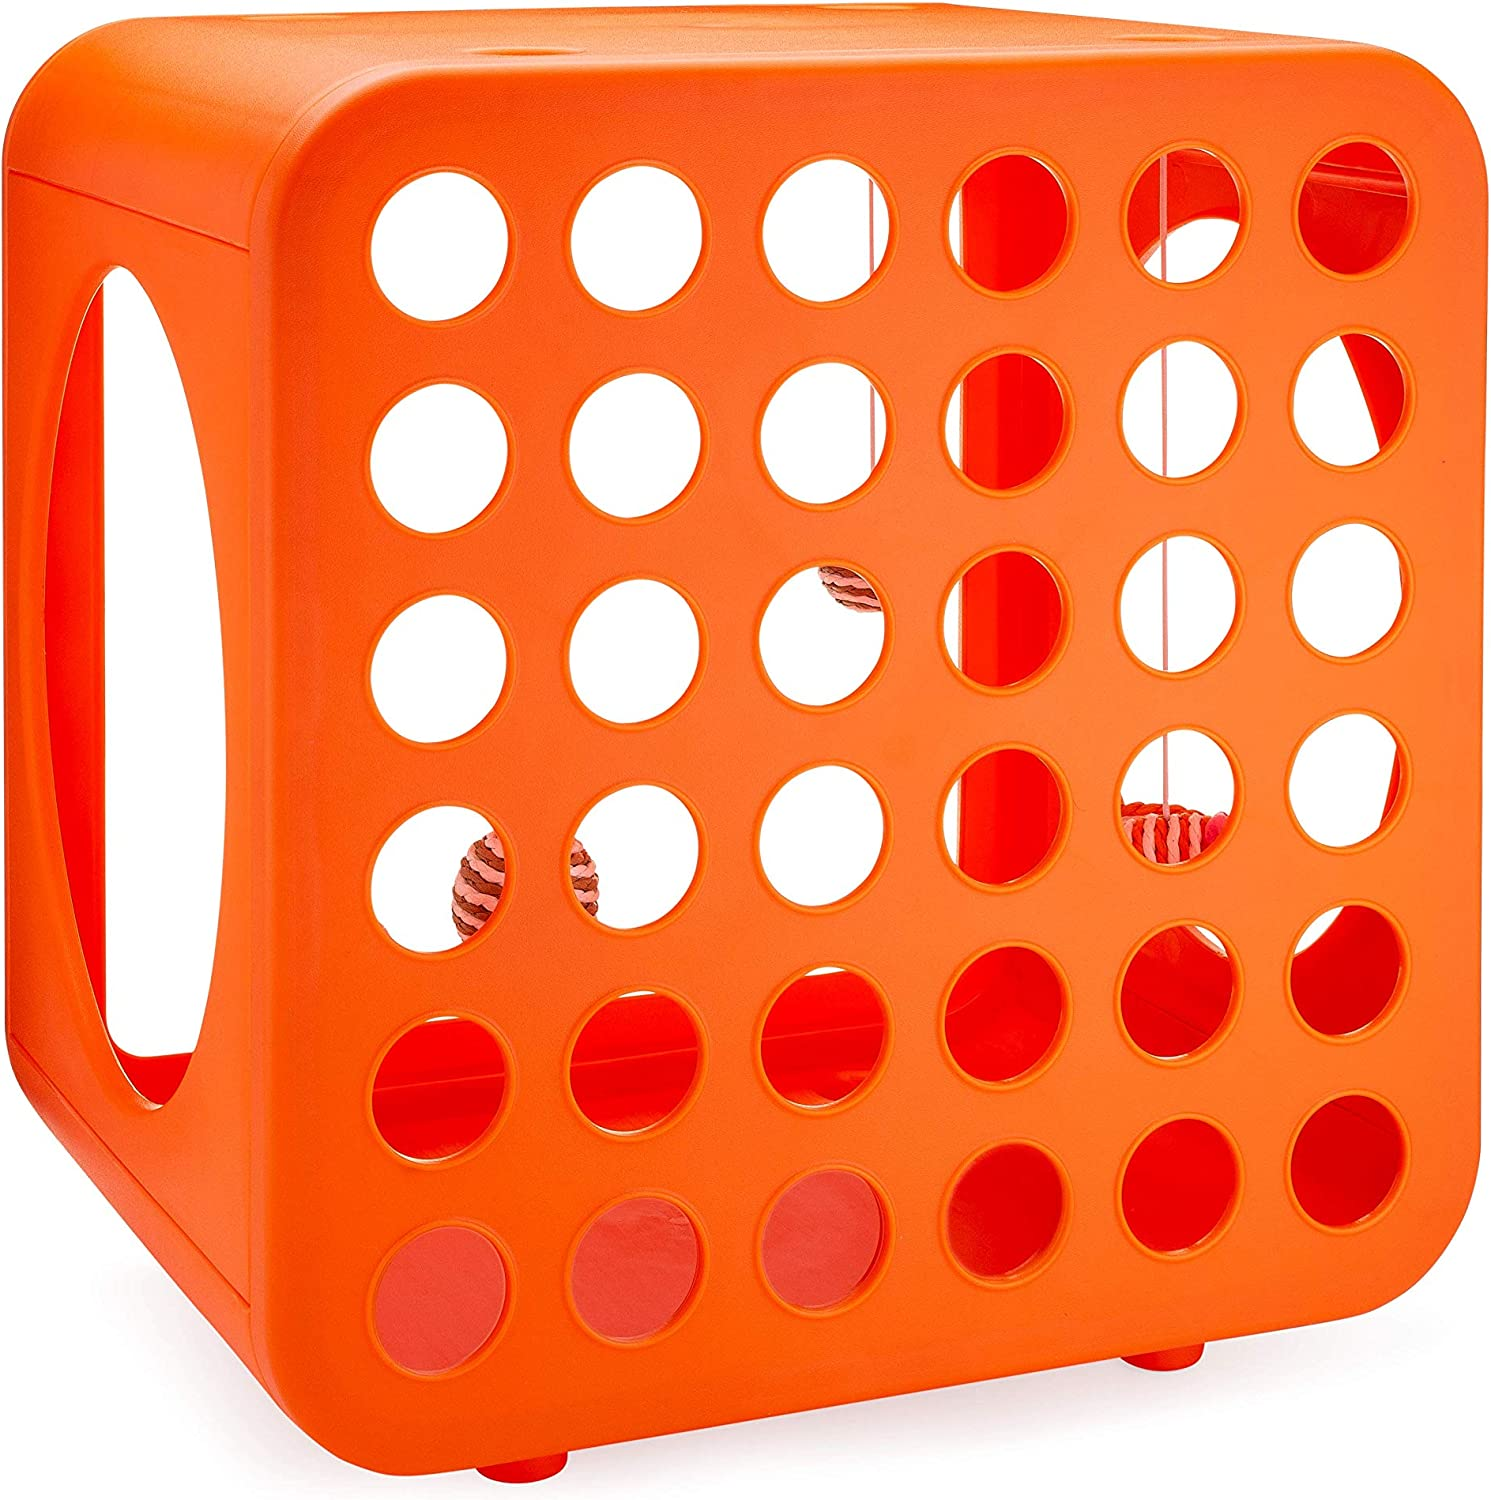 Kitty Kasas Standard Snap-On Modular Cat House, Recreation Cube Orange